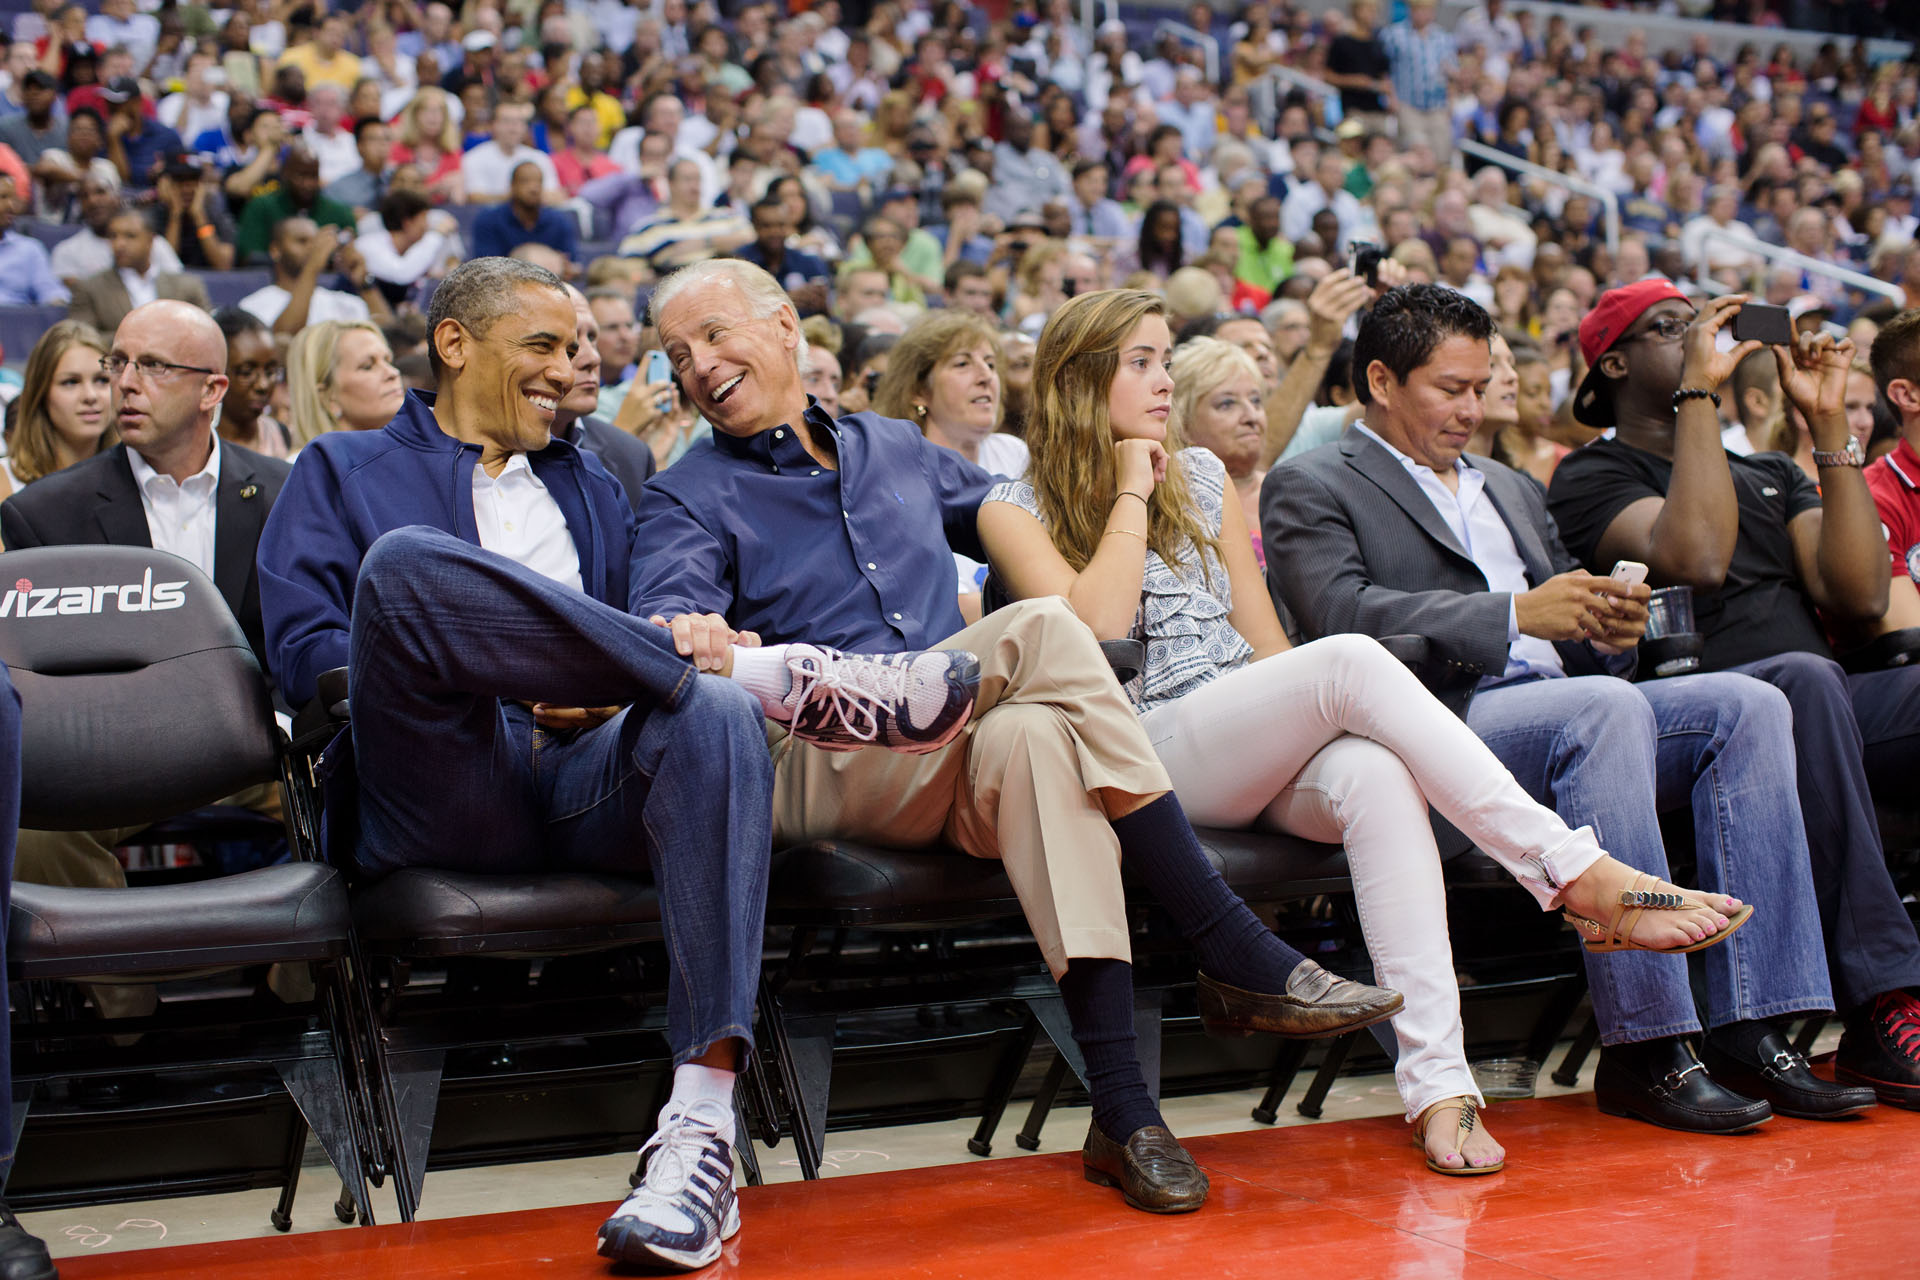 President Obama attends the U.S. Men's Olympic basketball team's game against Brazil (July 17, 2012)